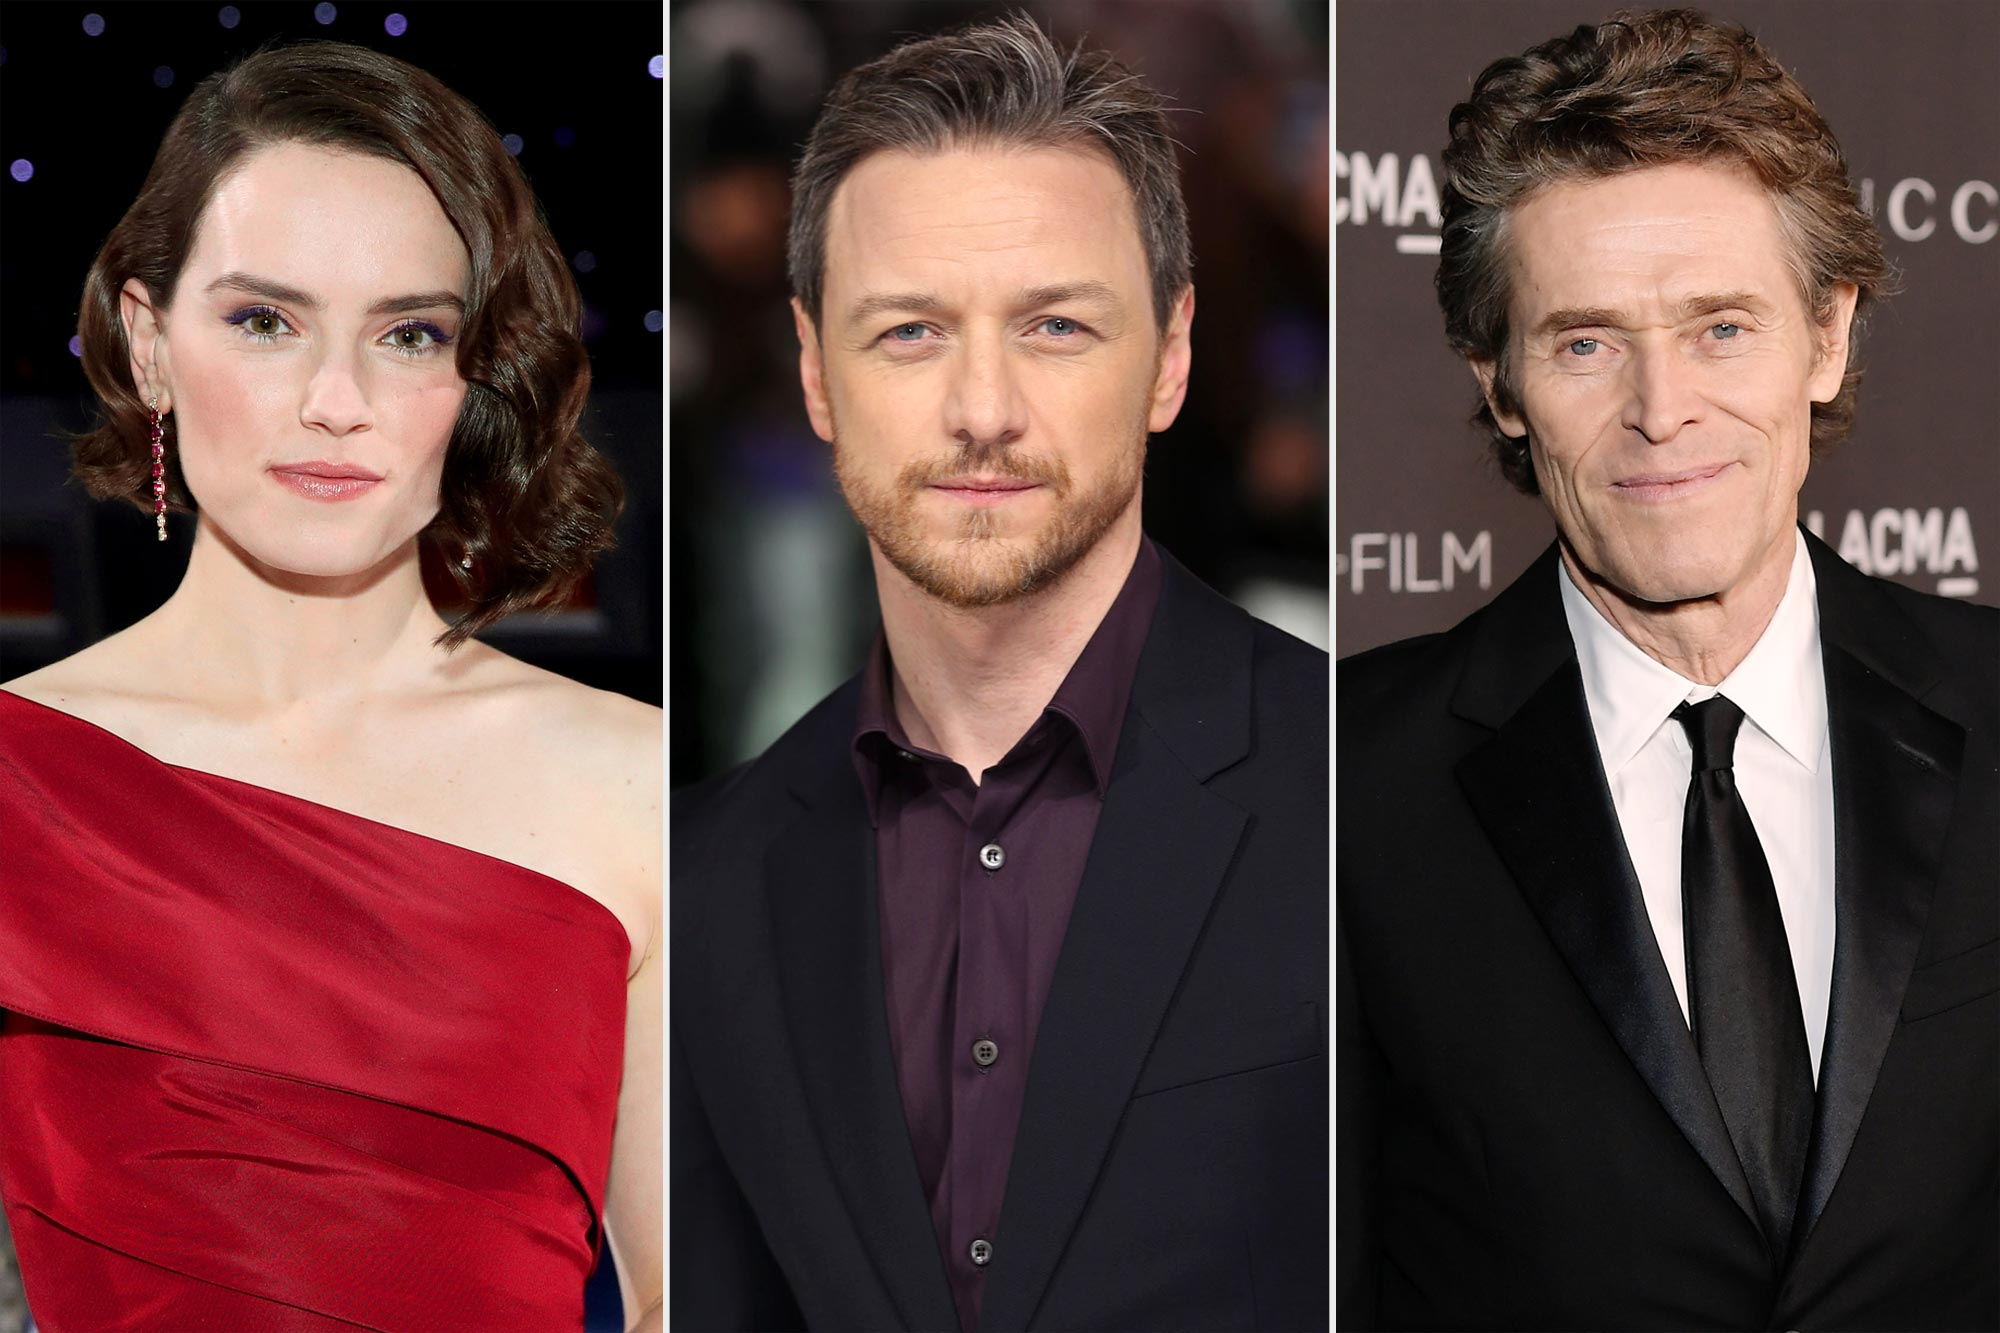 Daisy Ridley, James McAvoy, and Willem Dafoe